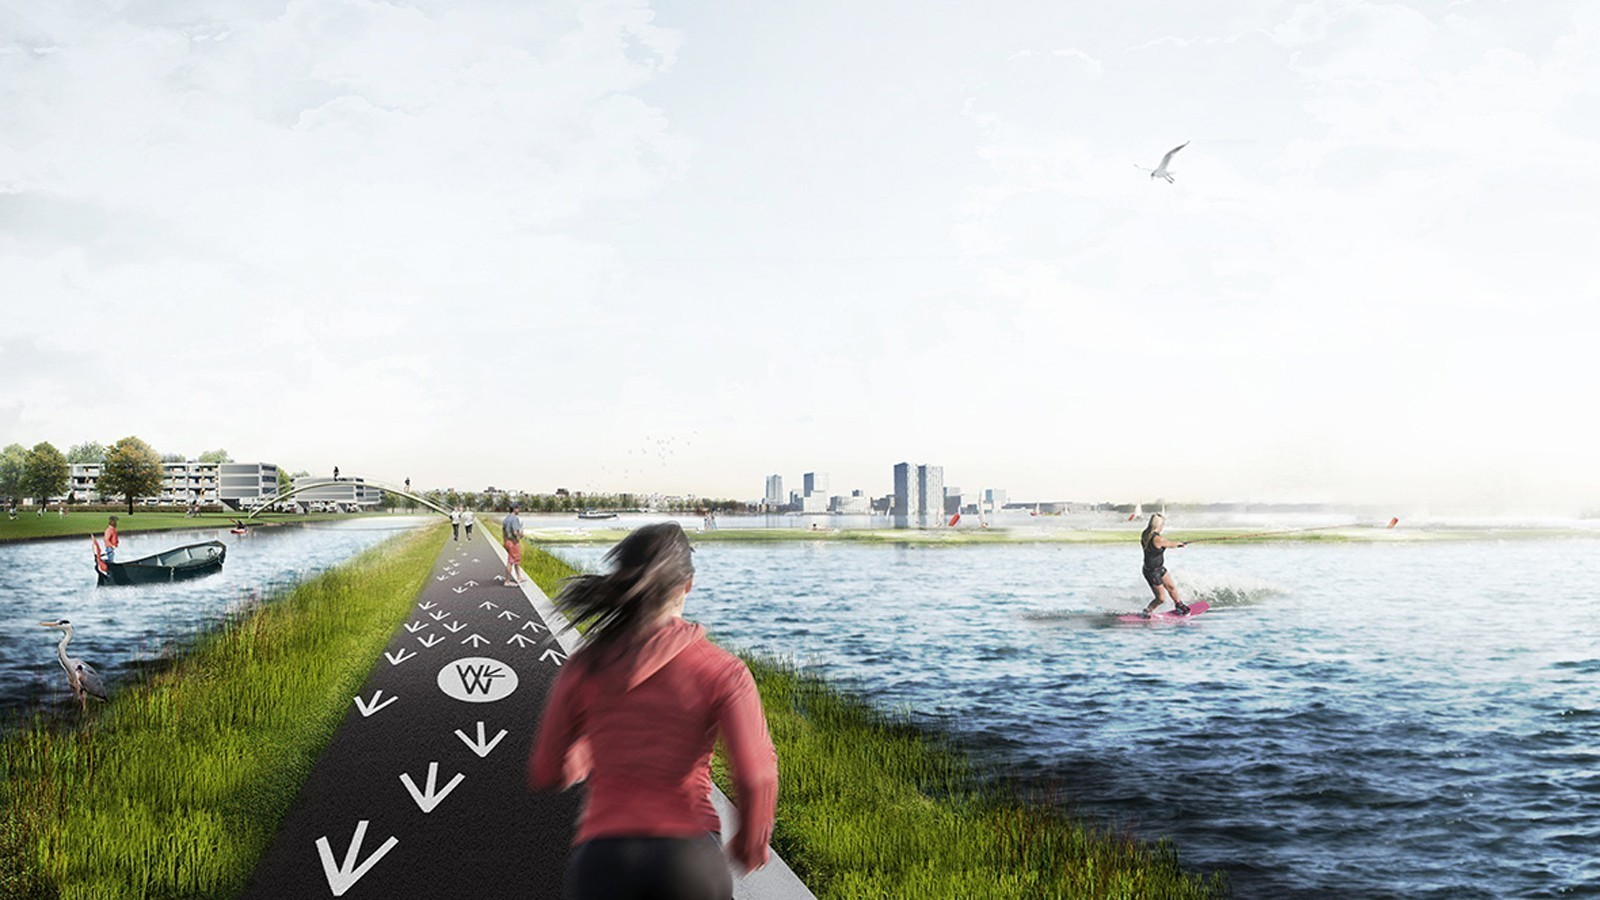 Weerwater: energizing the heart of a city